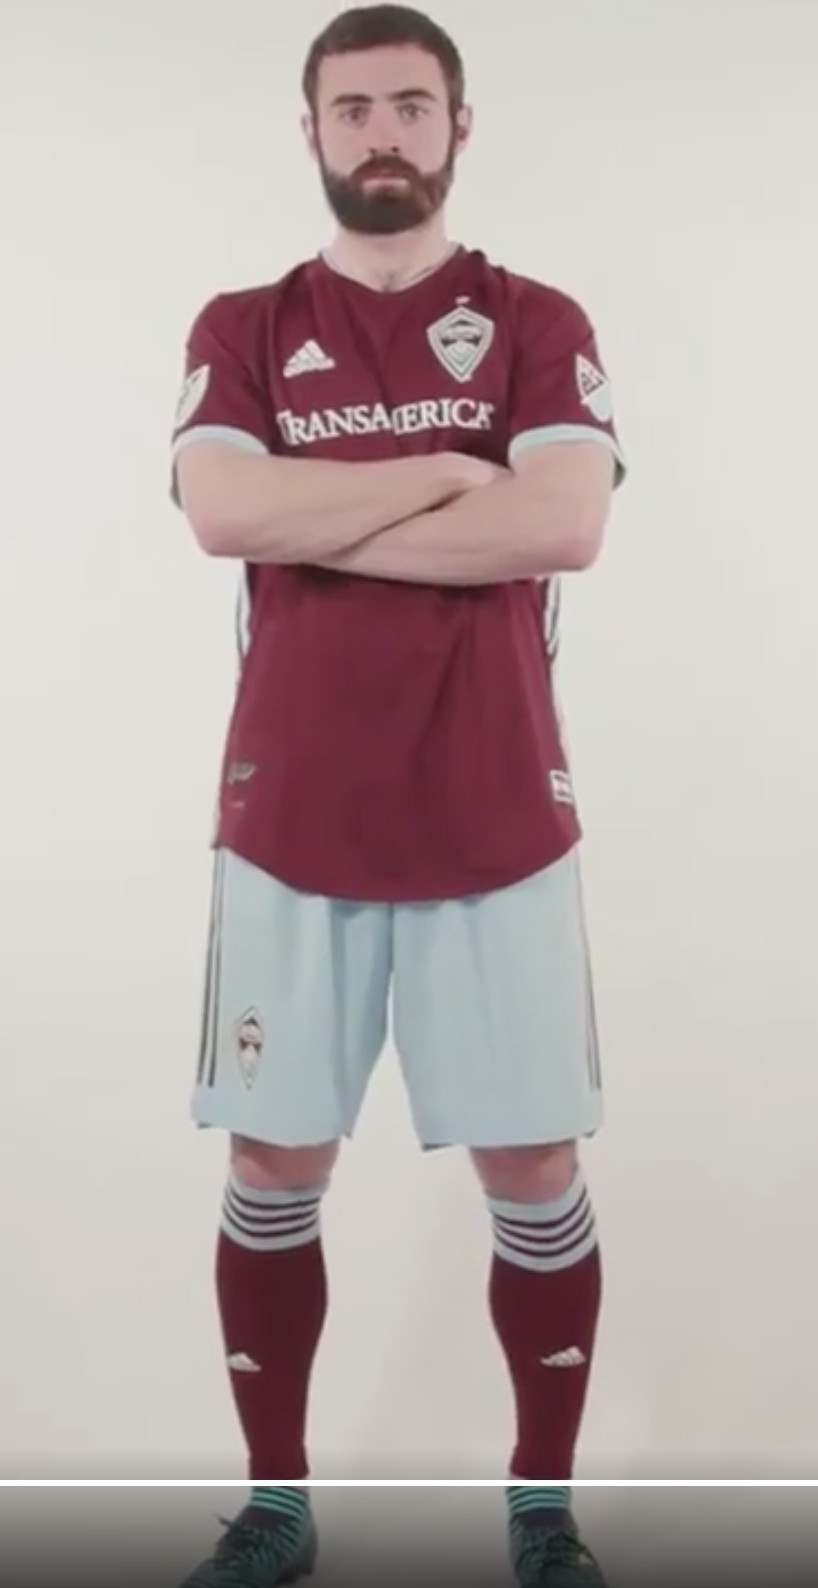 917a48bb1 Jack Price in the Rapids new home kit. https://www.coloradorapids.com/post/ 2018/02/08/2018-colorado-rapids-primary-kit-unveiled